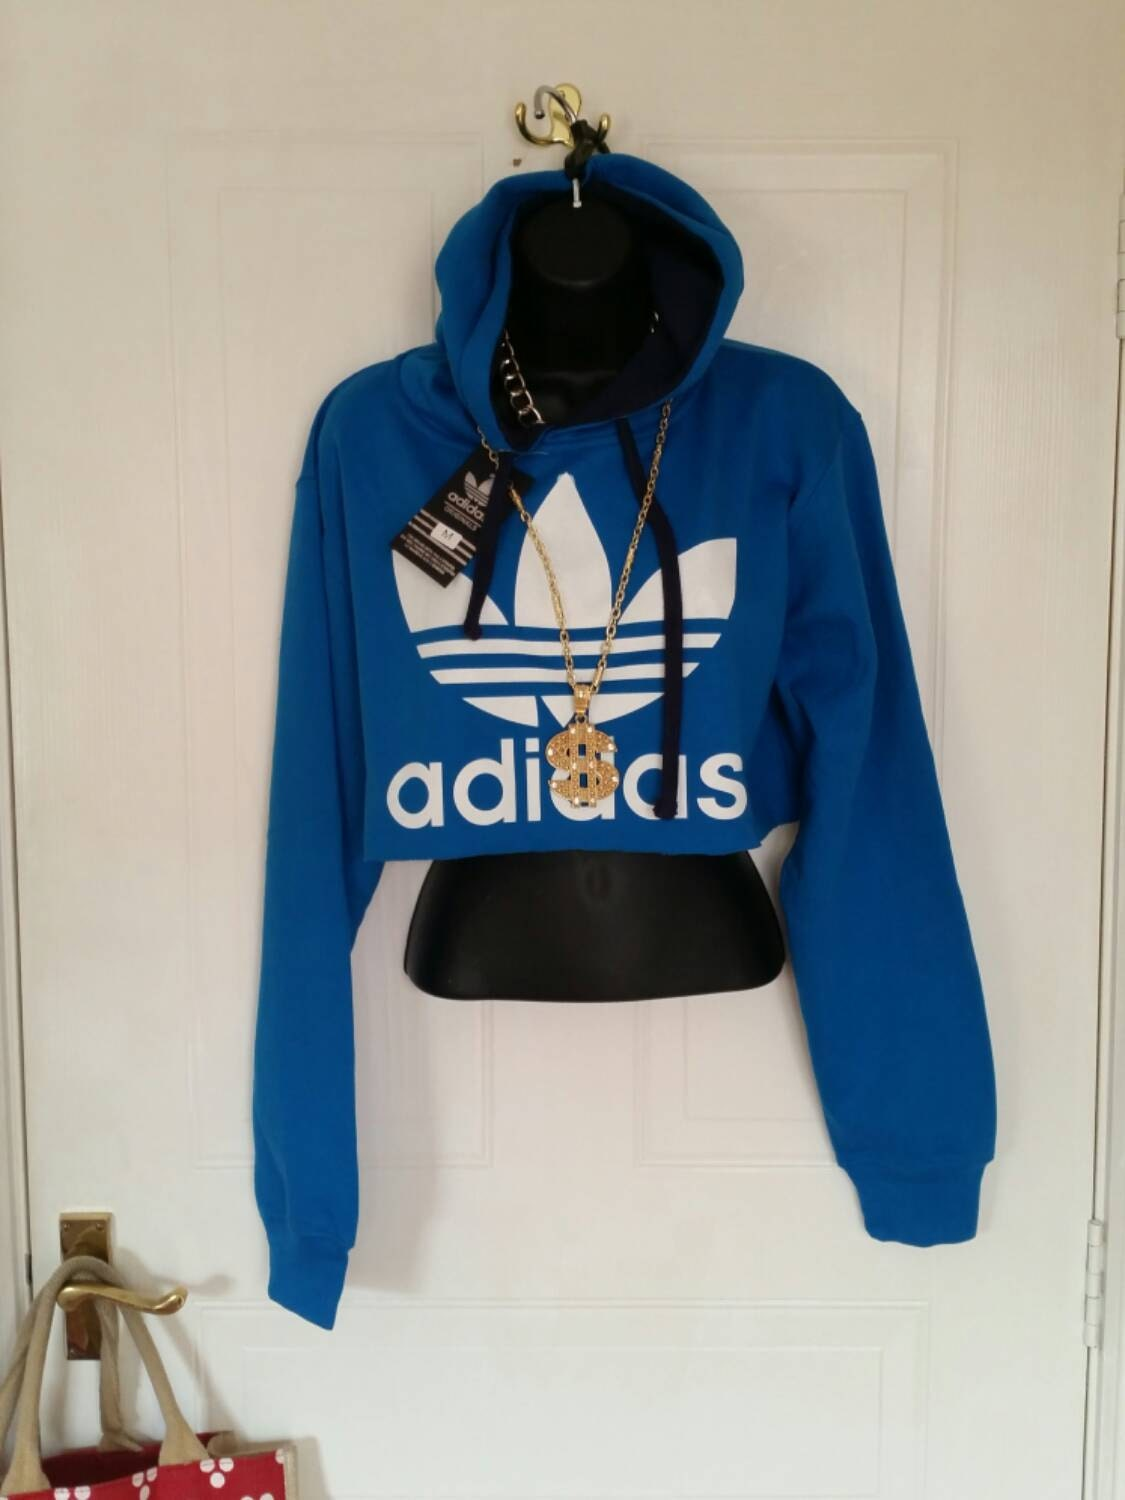 unisex customised adidas cropped hoodie jumper by mysticclothing. Black Bedroom Furniture Sets. Home Design Ideas